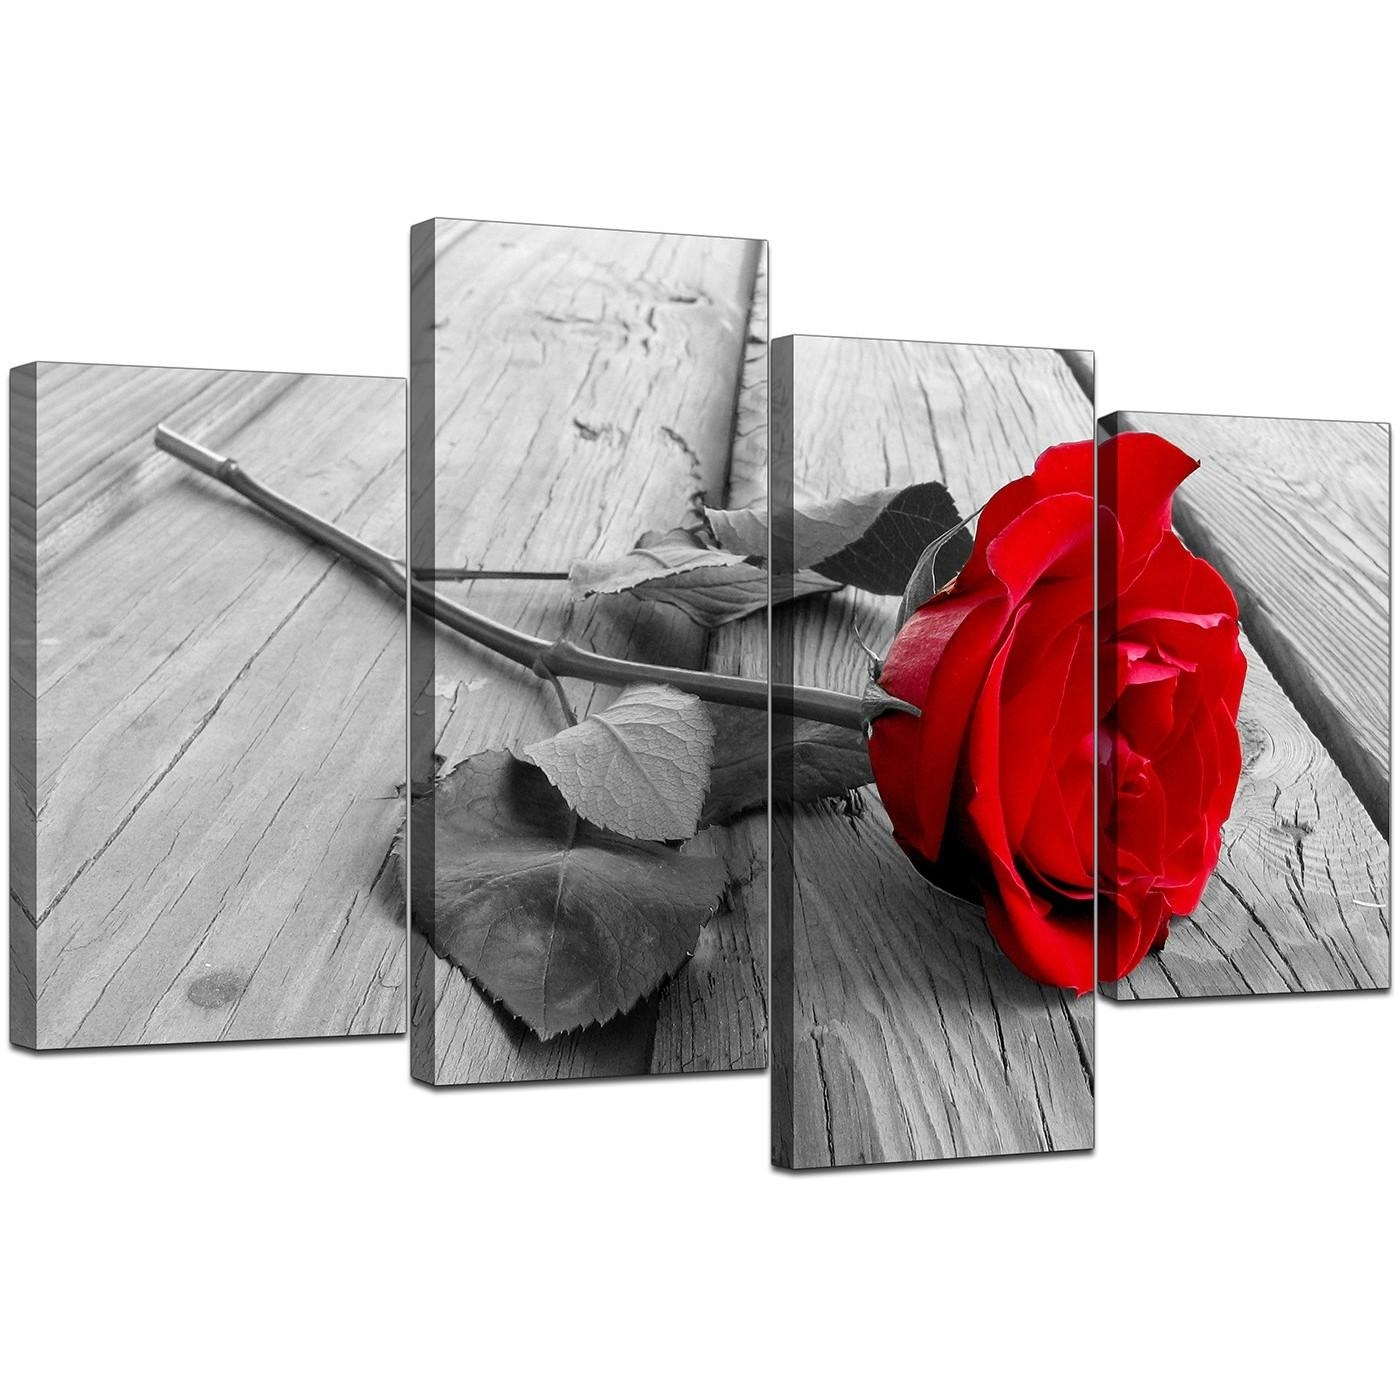 Floral Canvas Wall Art In Red Black And White – For Living Room Within Black And White Wall Art With Red (View 9 of 20)